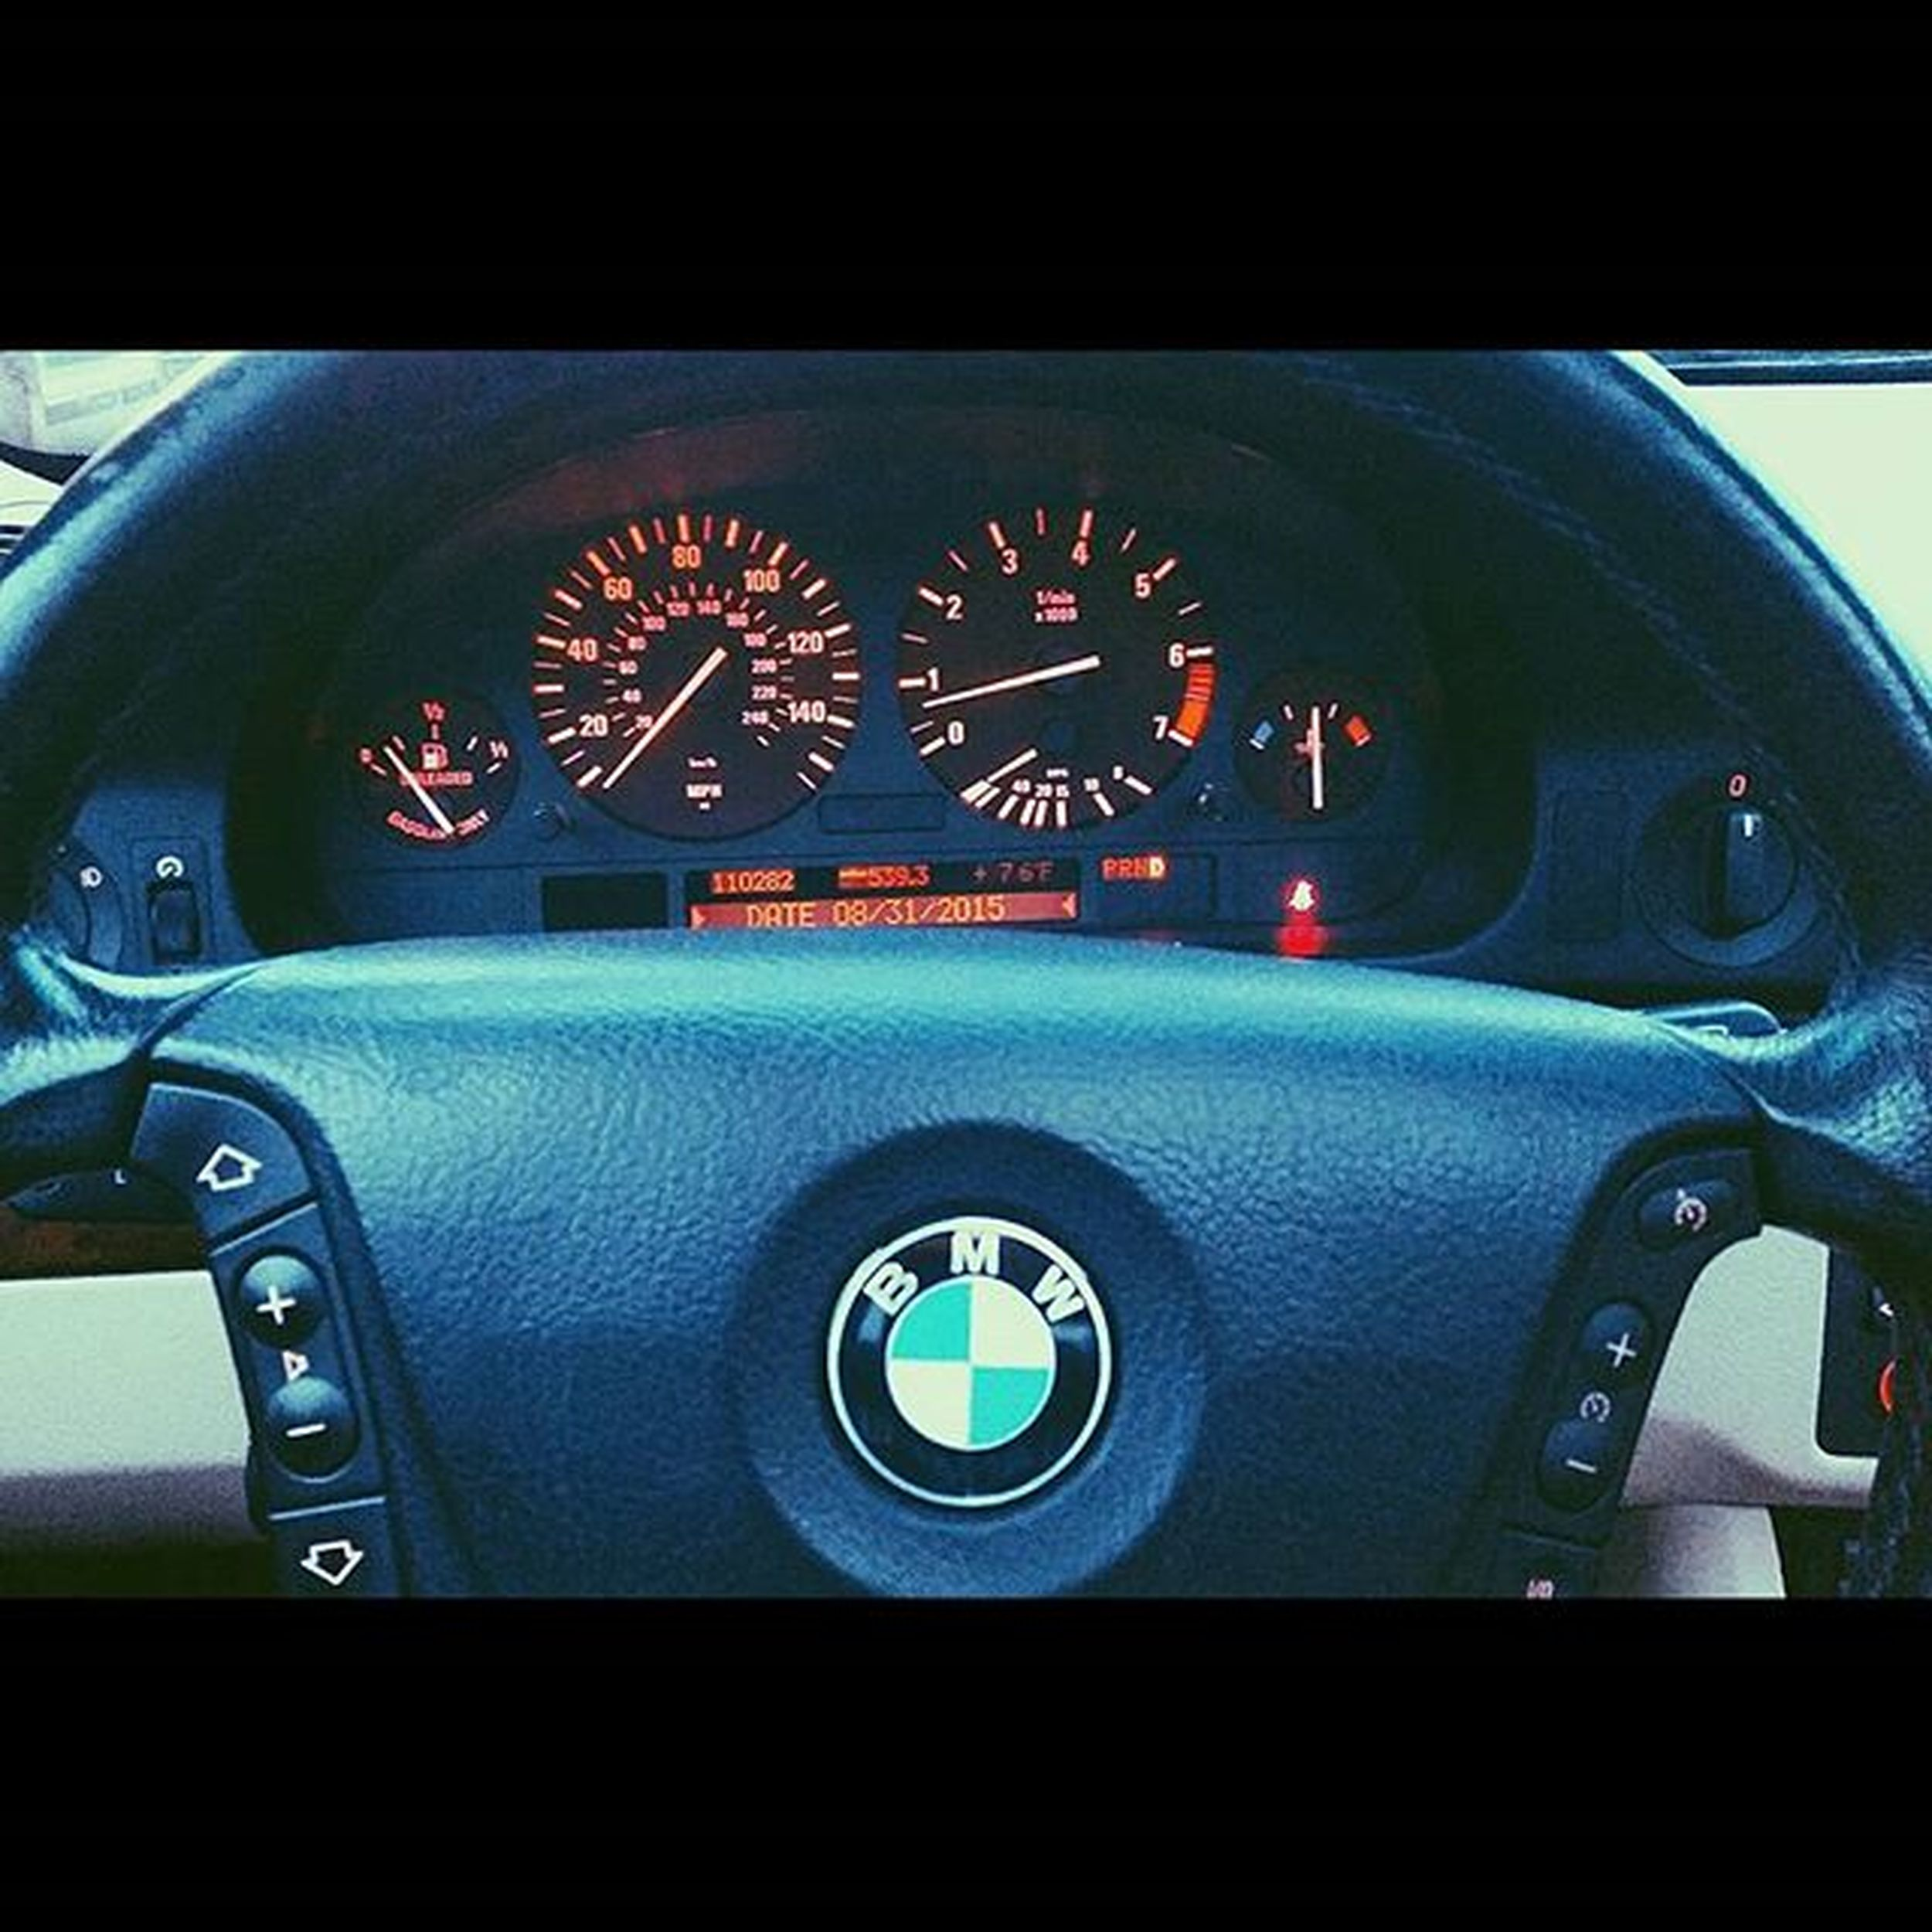 Good morning America! Early grind day for me Bmw Bmwgram Bimmer Bmwnation Beemdoubleyou Beemer Bimmers